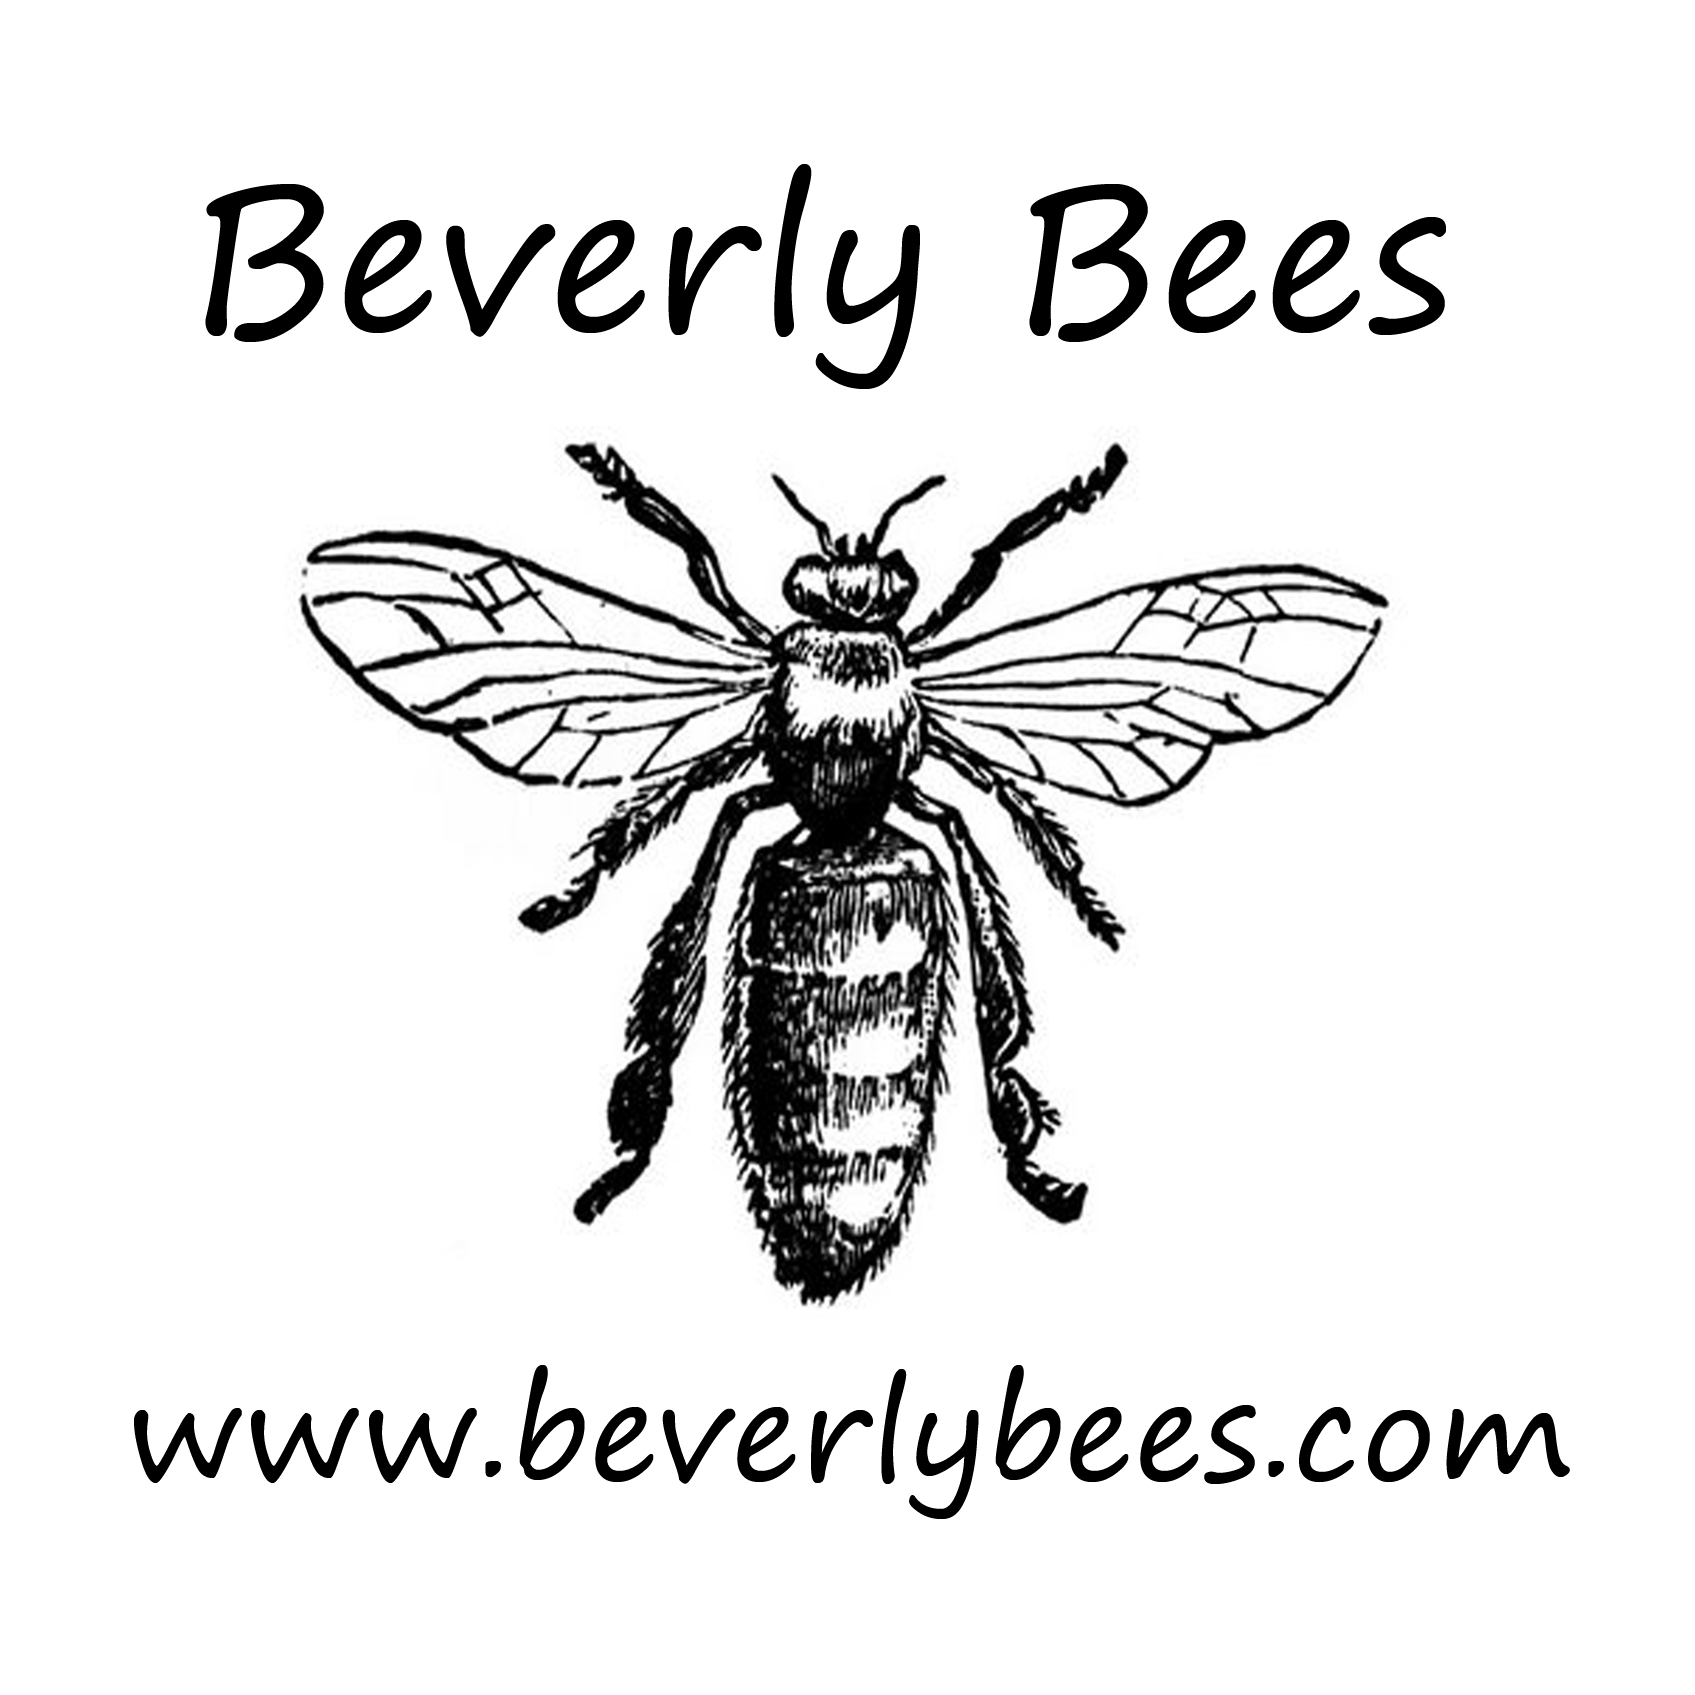 Beverly Bees